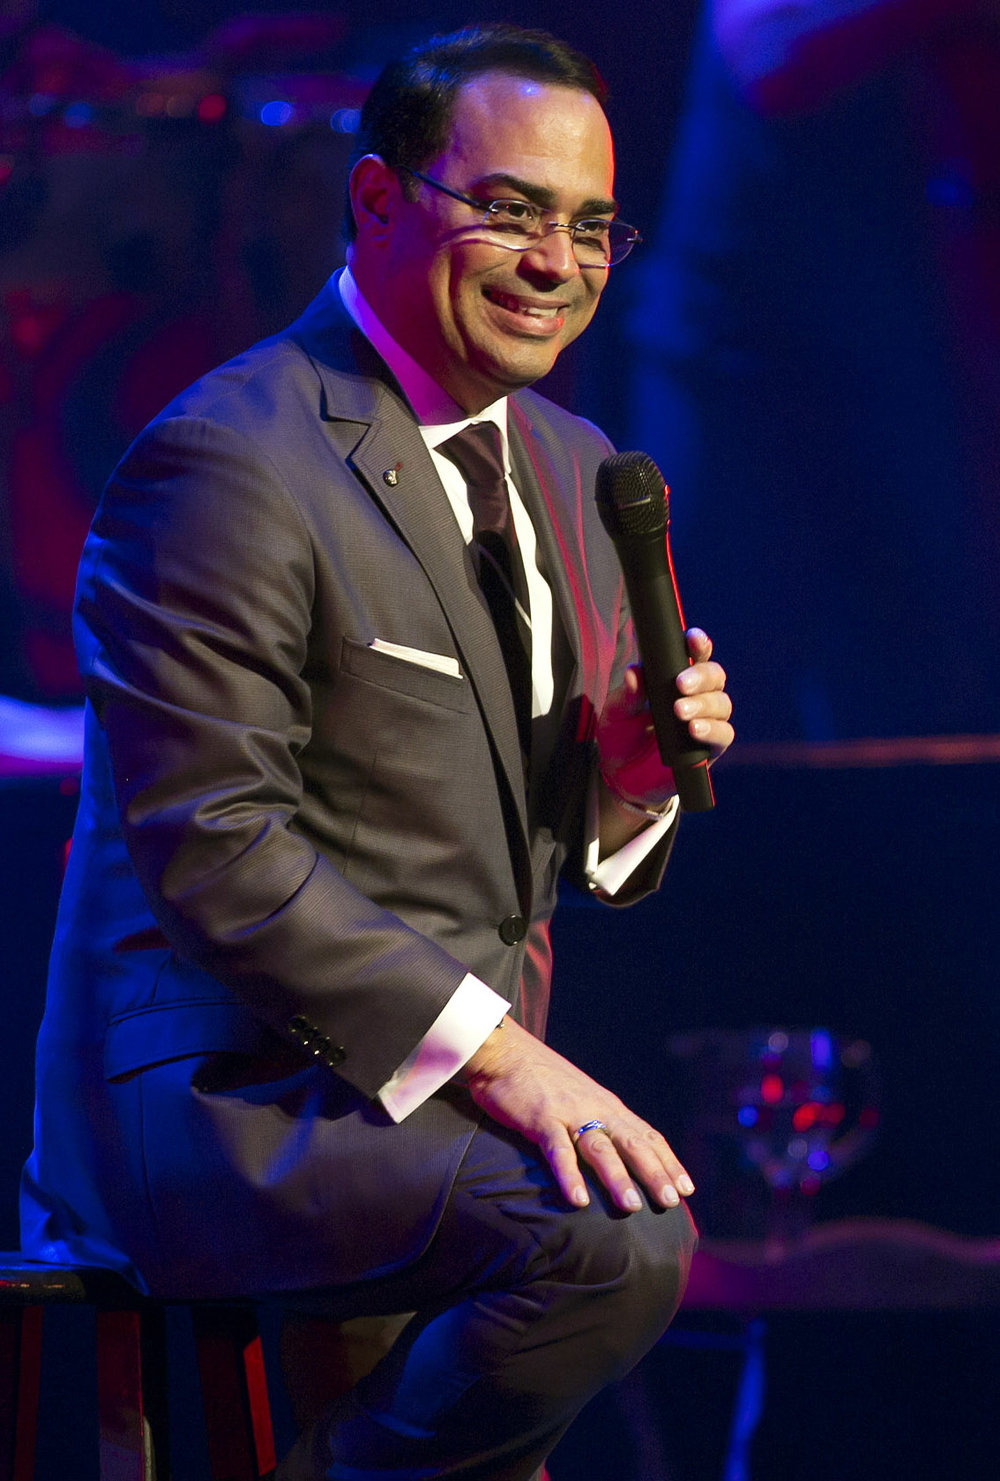 Gilberto Santa Rosa - One of the biggest acts in salsa music, Puerto Rican born Santa Rosa grew up in Guayama, Puerto Rico. Considered one of the classiest acts in the industry, he has won many adoring fans throughout Latin America, especially in Puerto Rico, Venezuela, and Spain, where his music is played daily on radios.